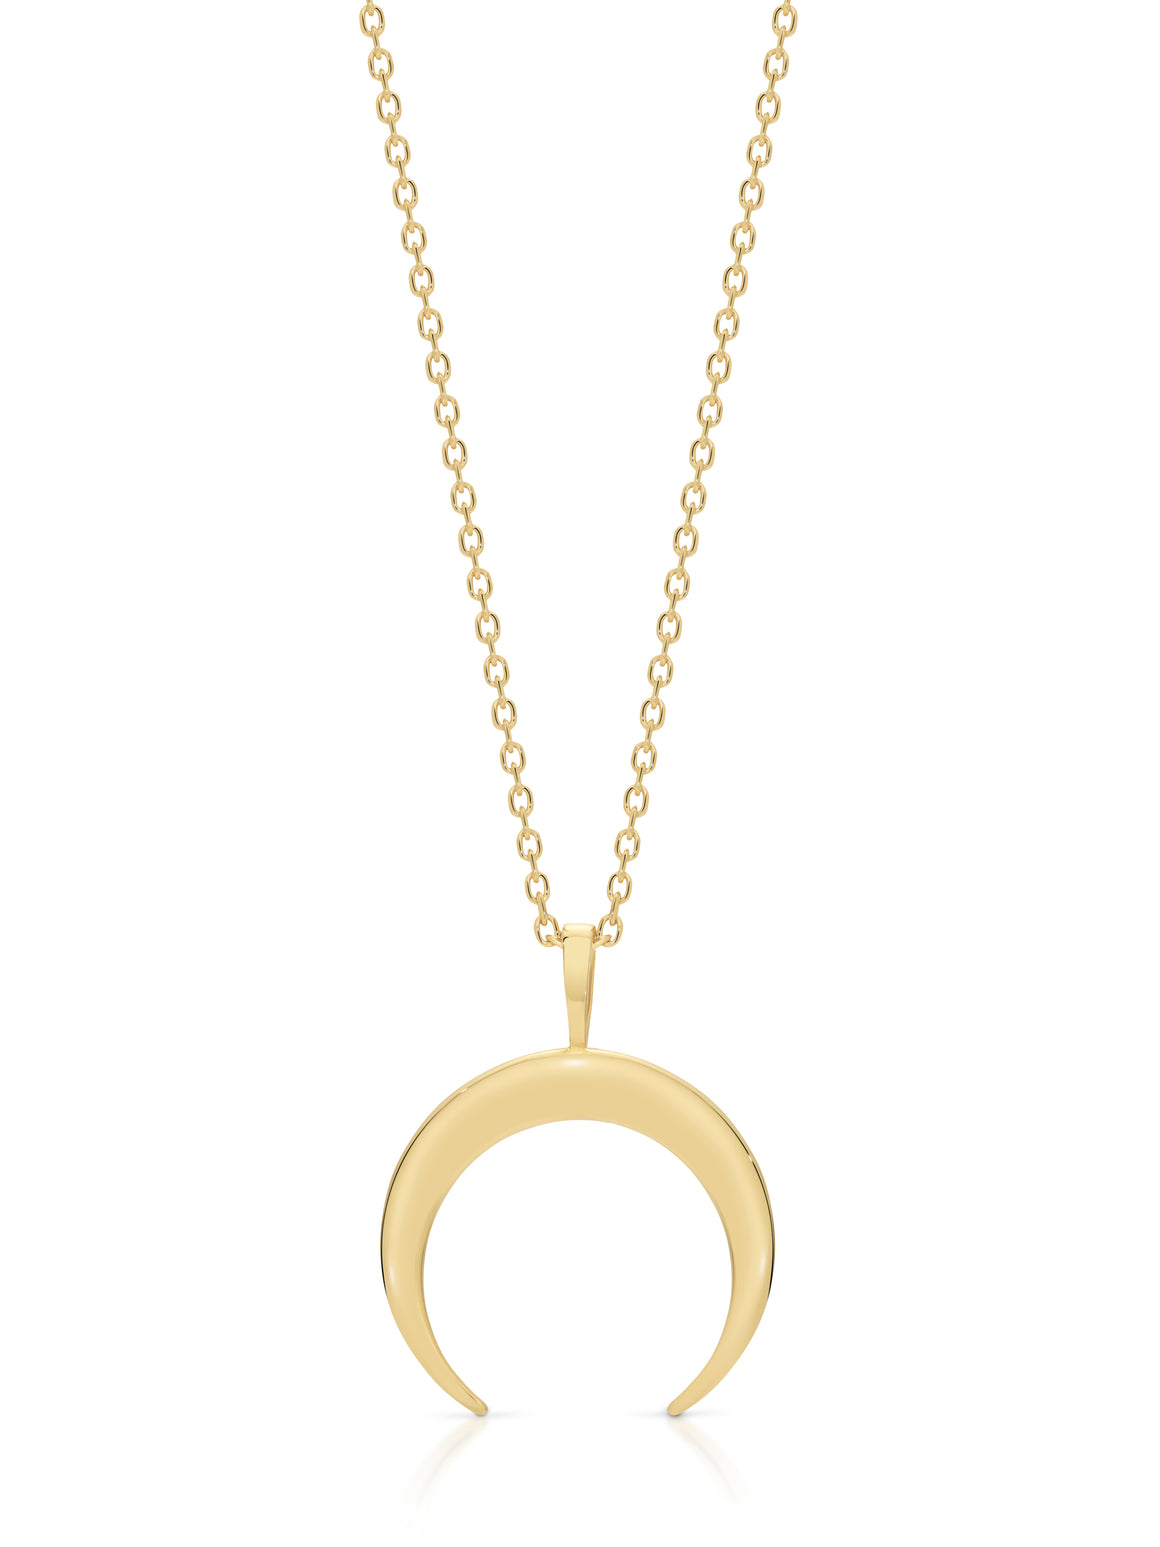 9ct Gold 'Eclipse' necklace - Gemma Stone  ABN:51 621 127 866